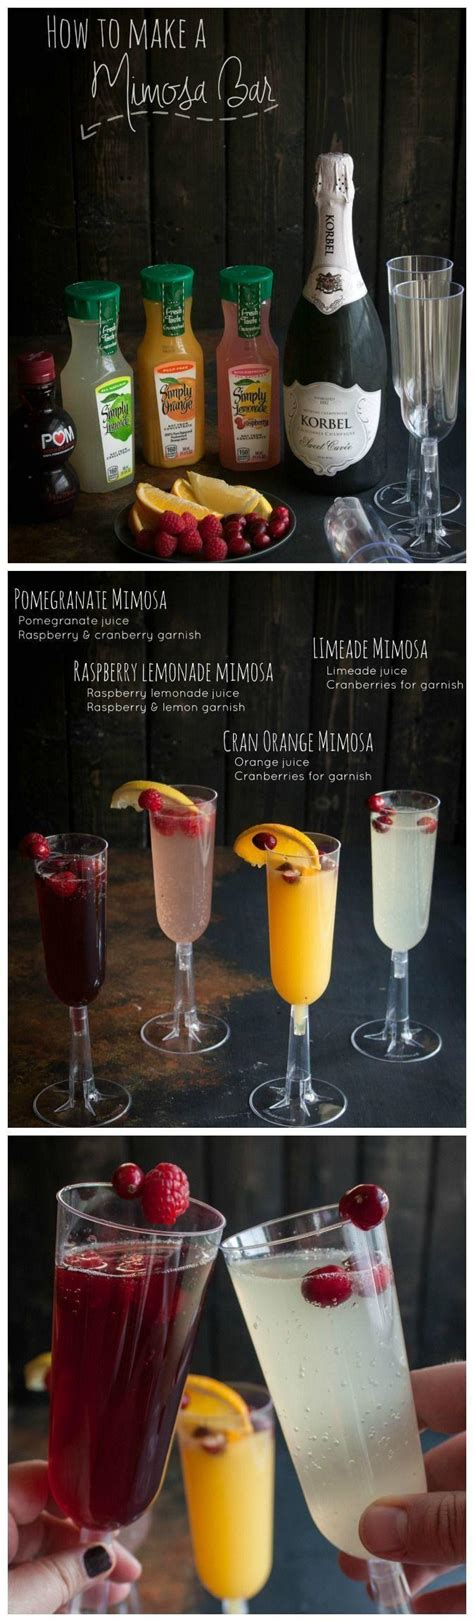 how to make a mimosa wedding theme how to make a mimosa bar 2549254 weddbook